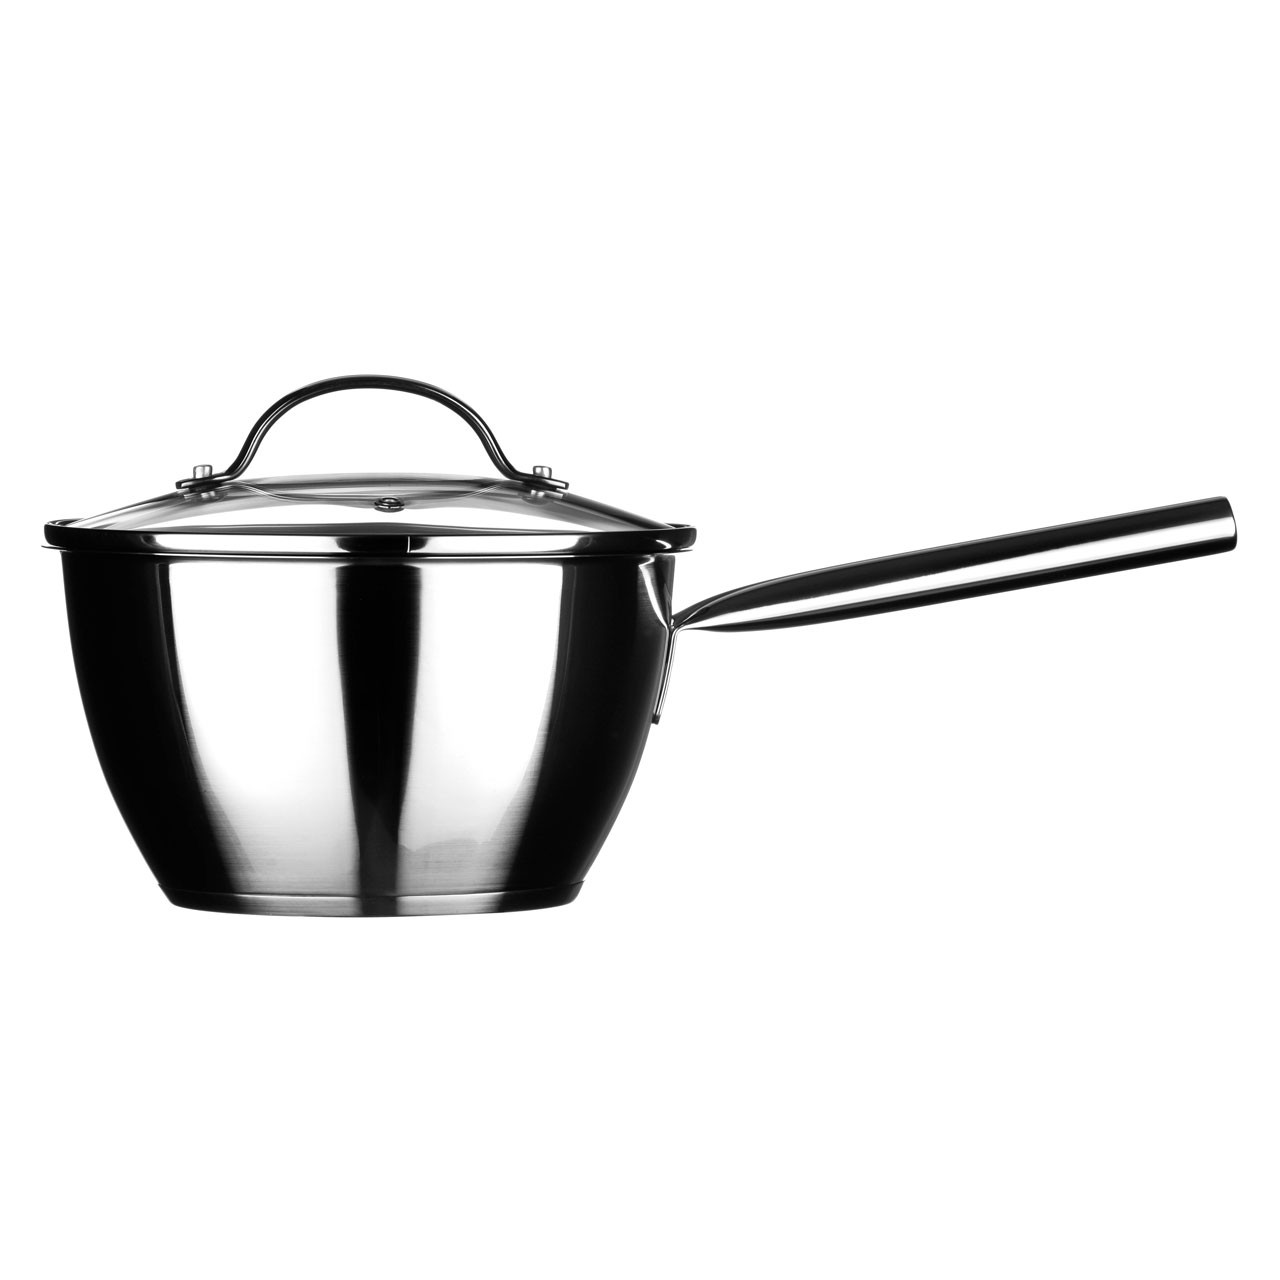 Tenzo C Series Saucepan Stainless Steel - 10 Year Guarantee